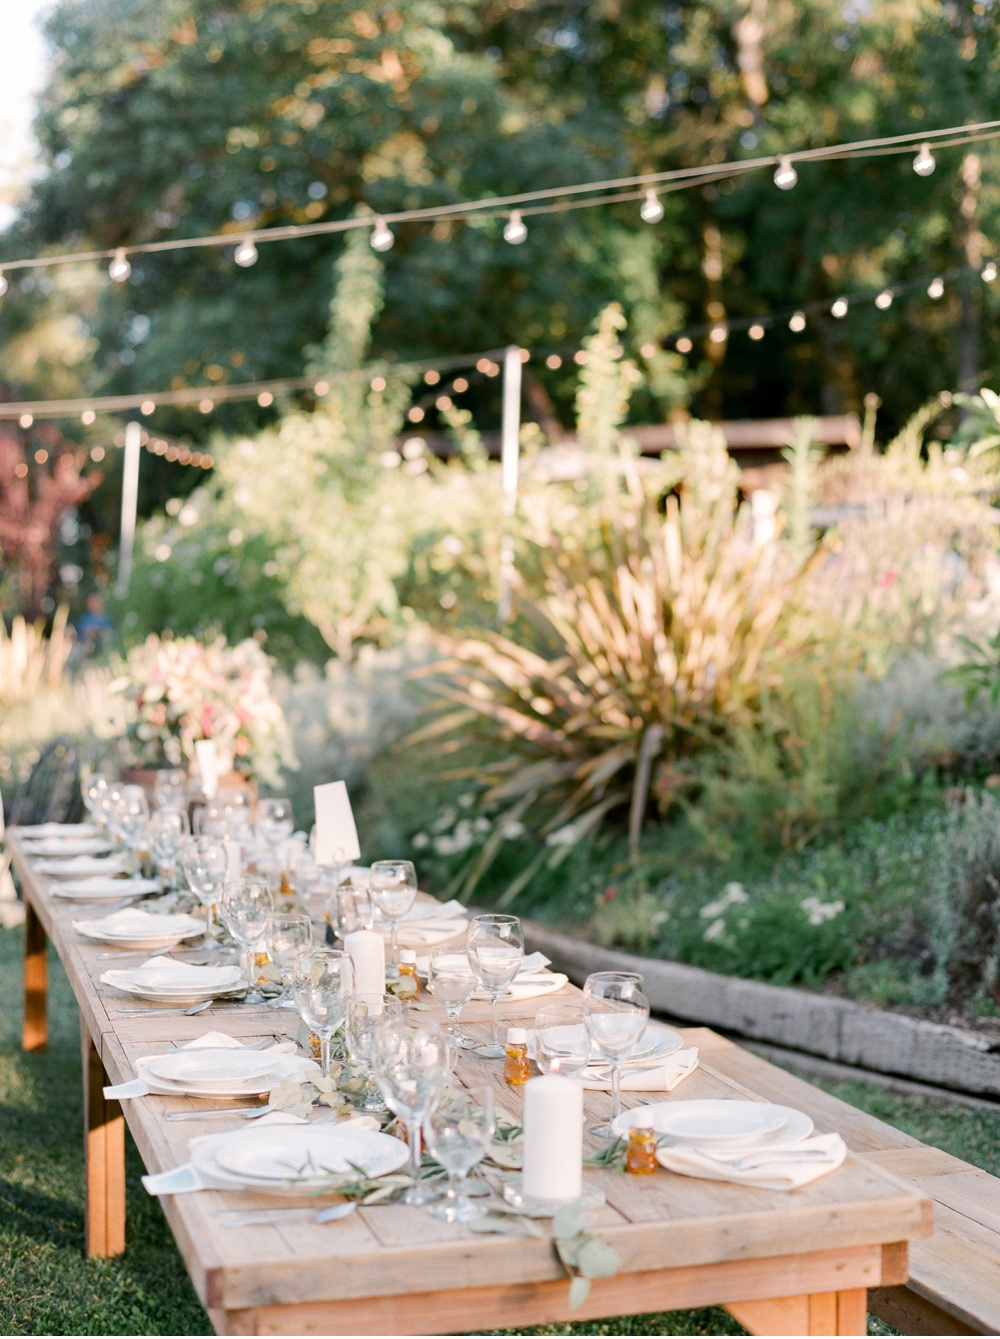 Napa_Valley_Wedding_Photographer©MadalinaSheldon_0016.jpg